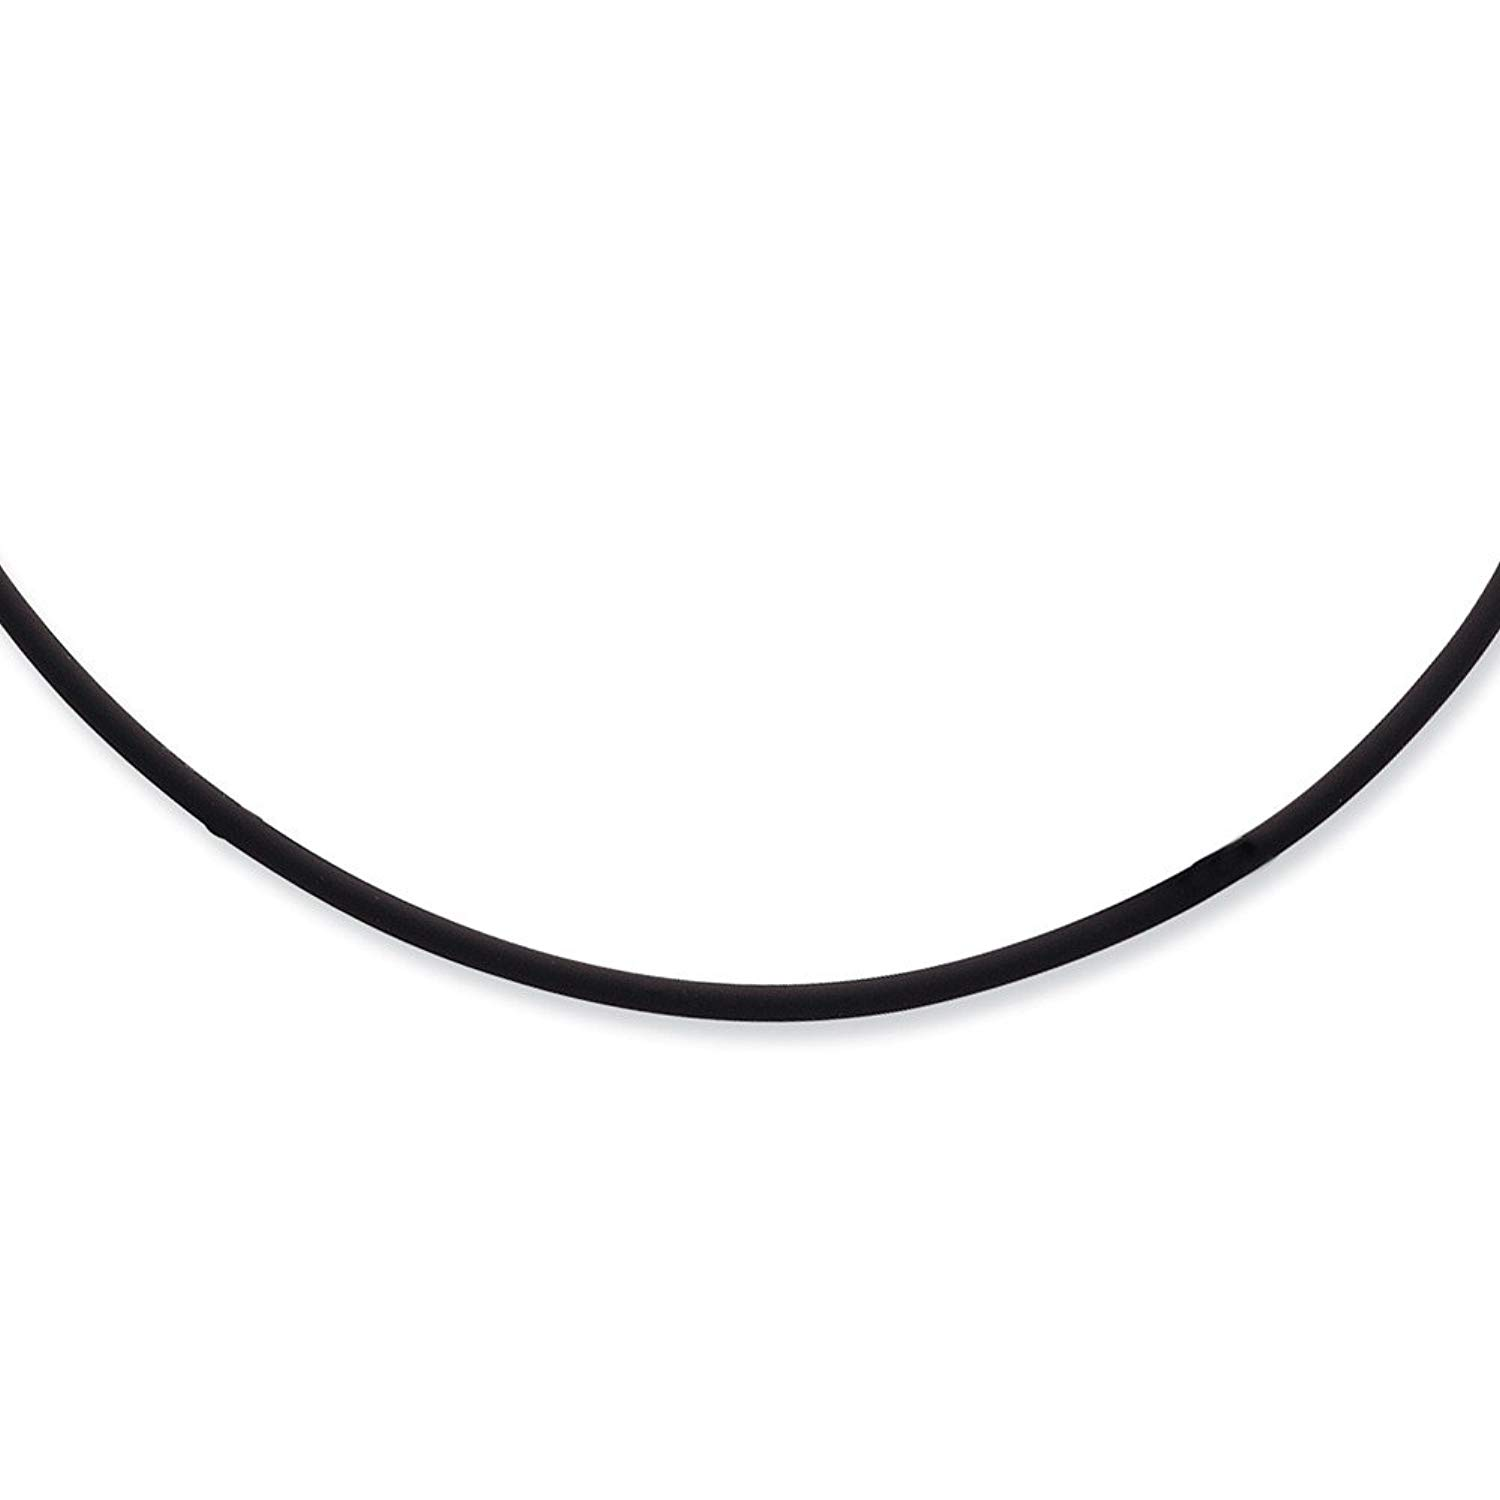 Solid 925 Sterling Silver 16inch 3mm Black Rubber Cord Necklace Chain - with Secure Lobster Lock Clasp